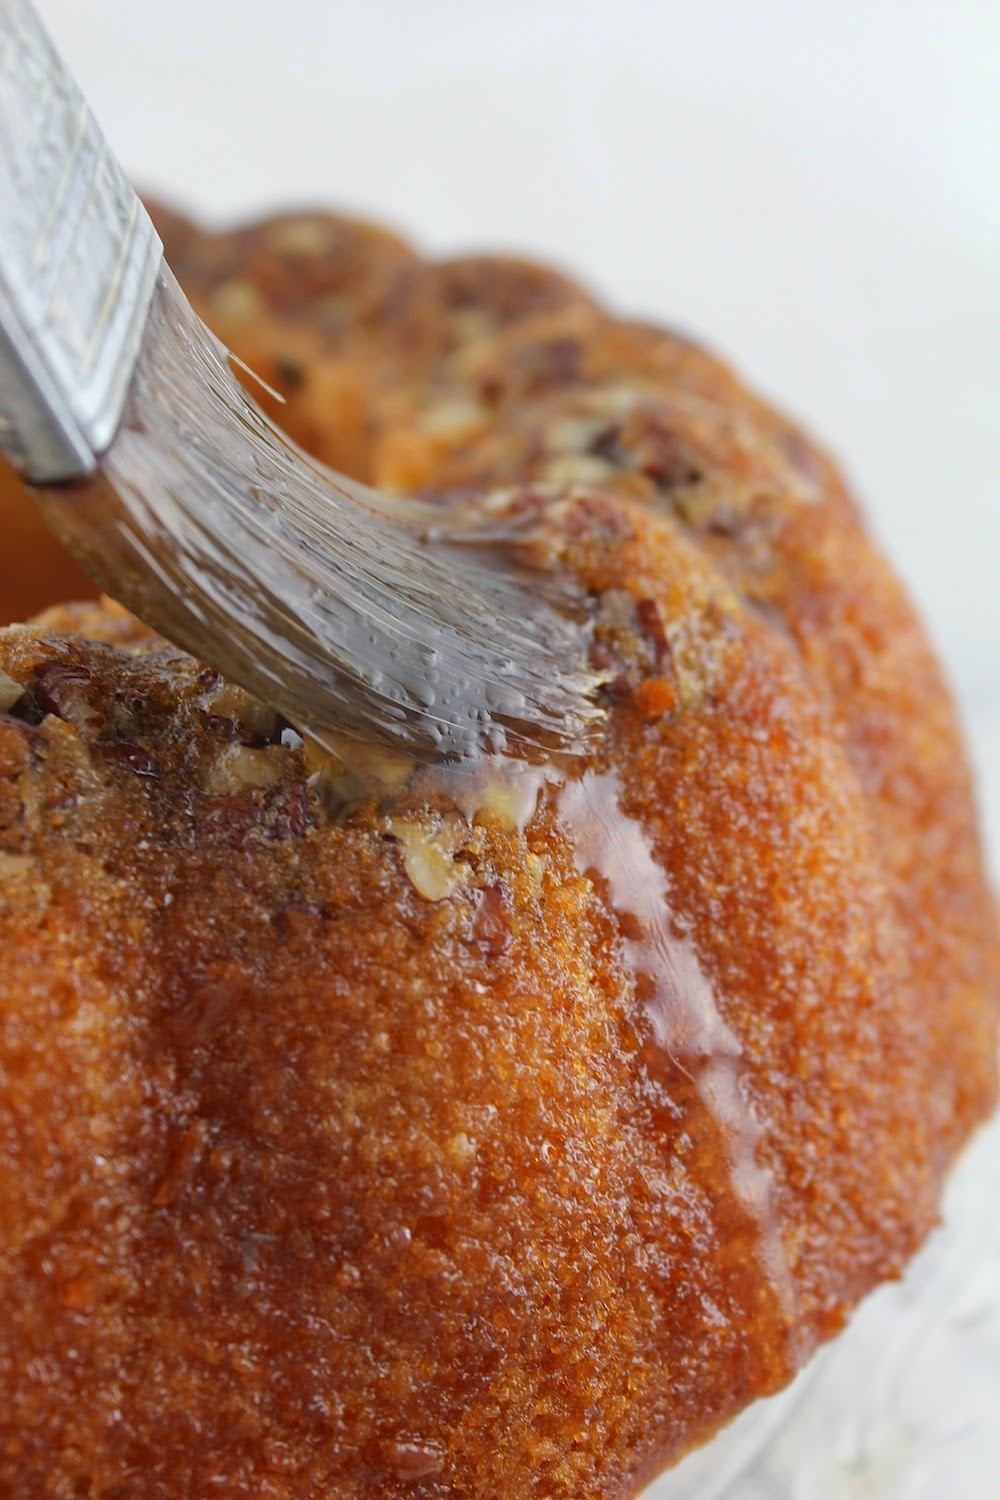 feast: Honey Whiskey Bundt Cake with Honey Whiskey Butter Glaze